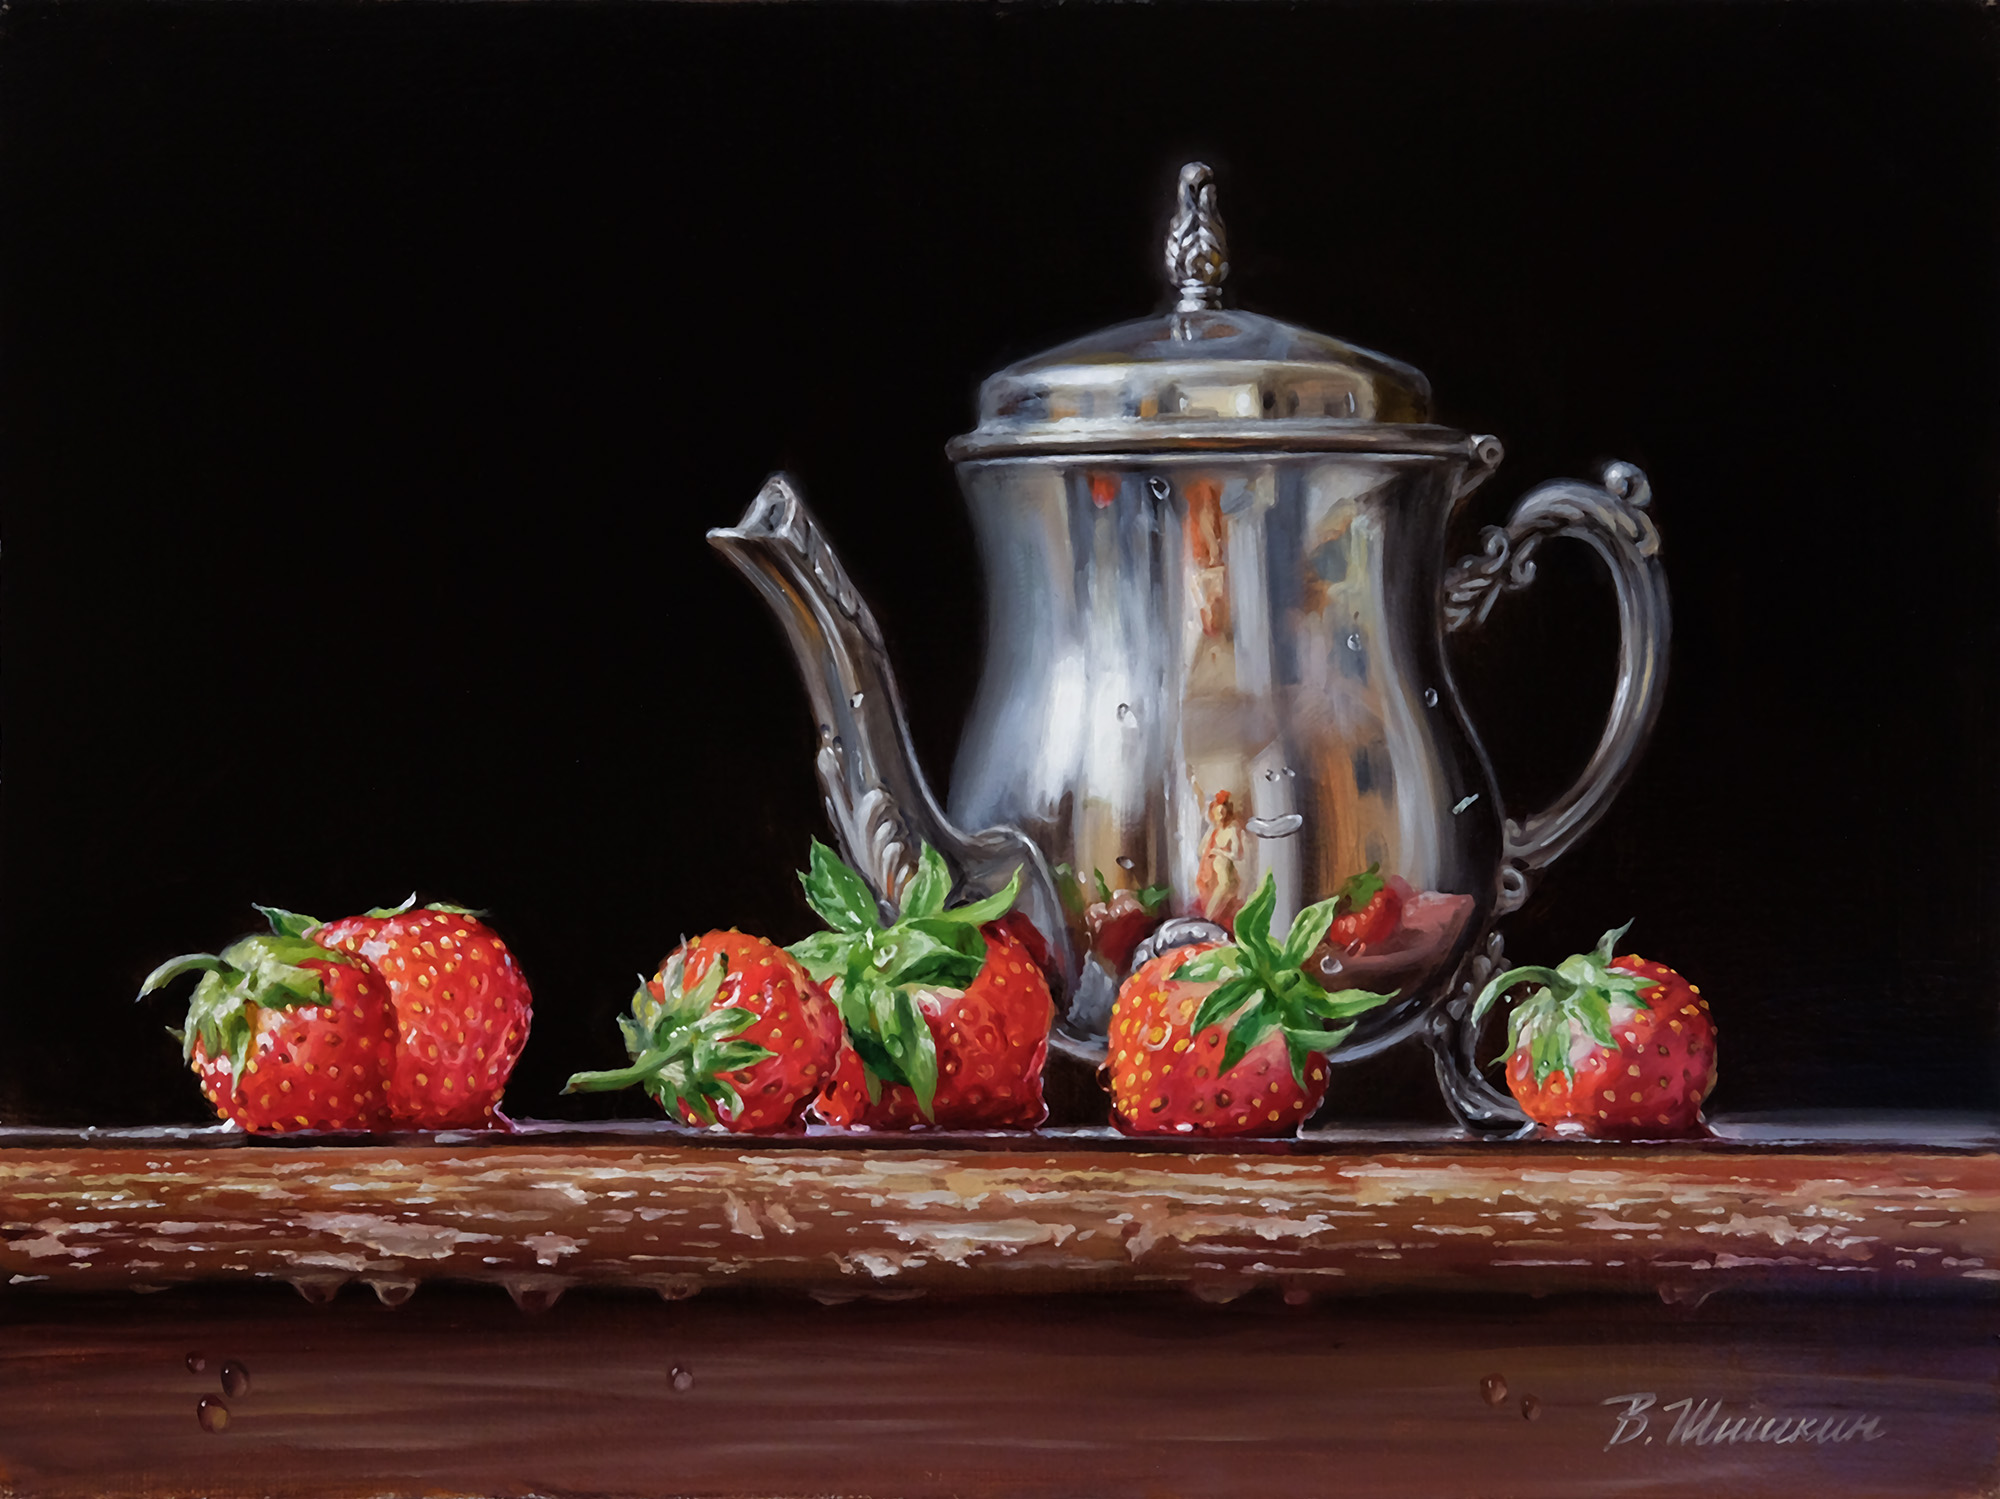 Kettle with strawberries